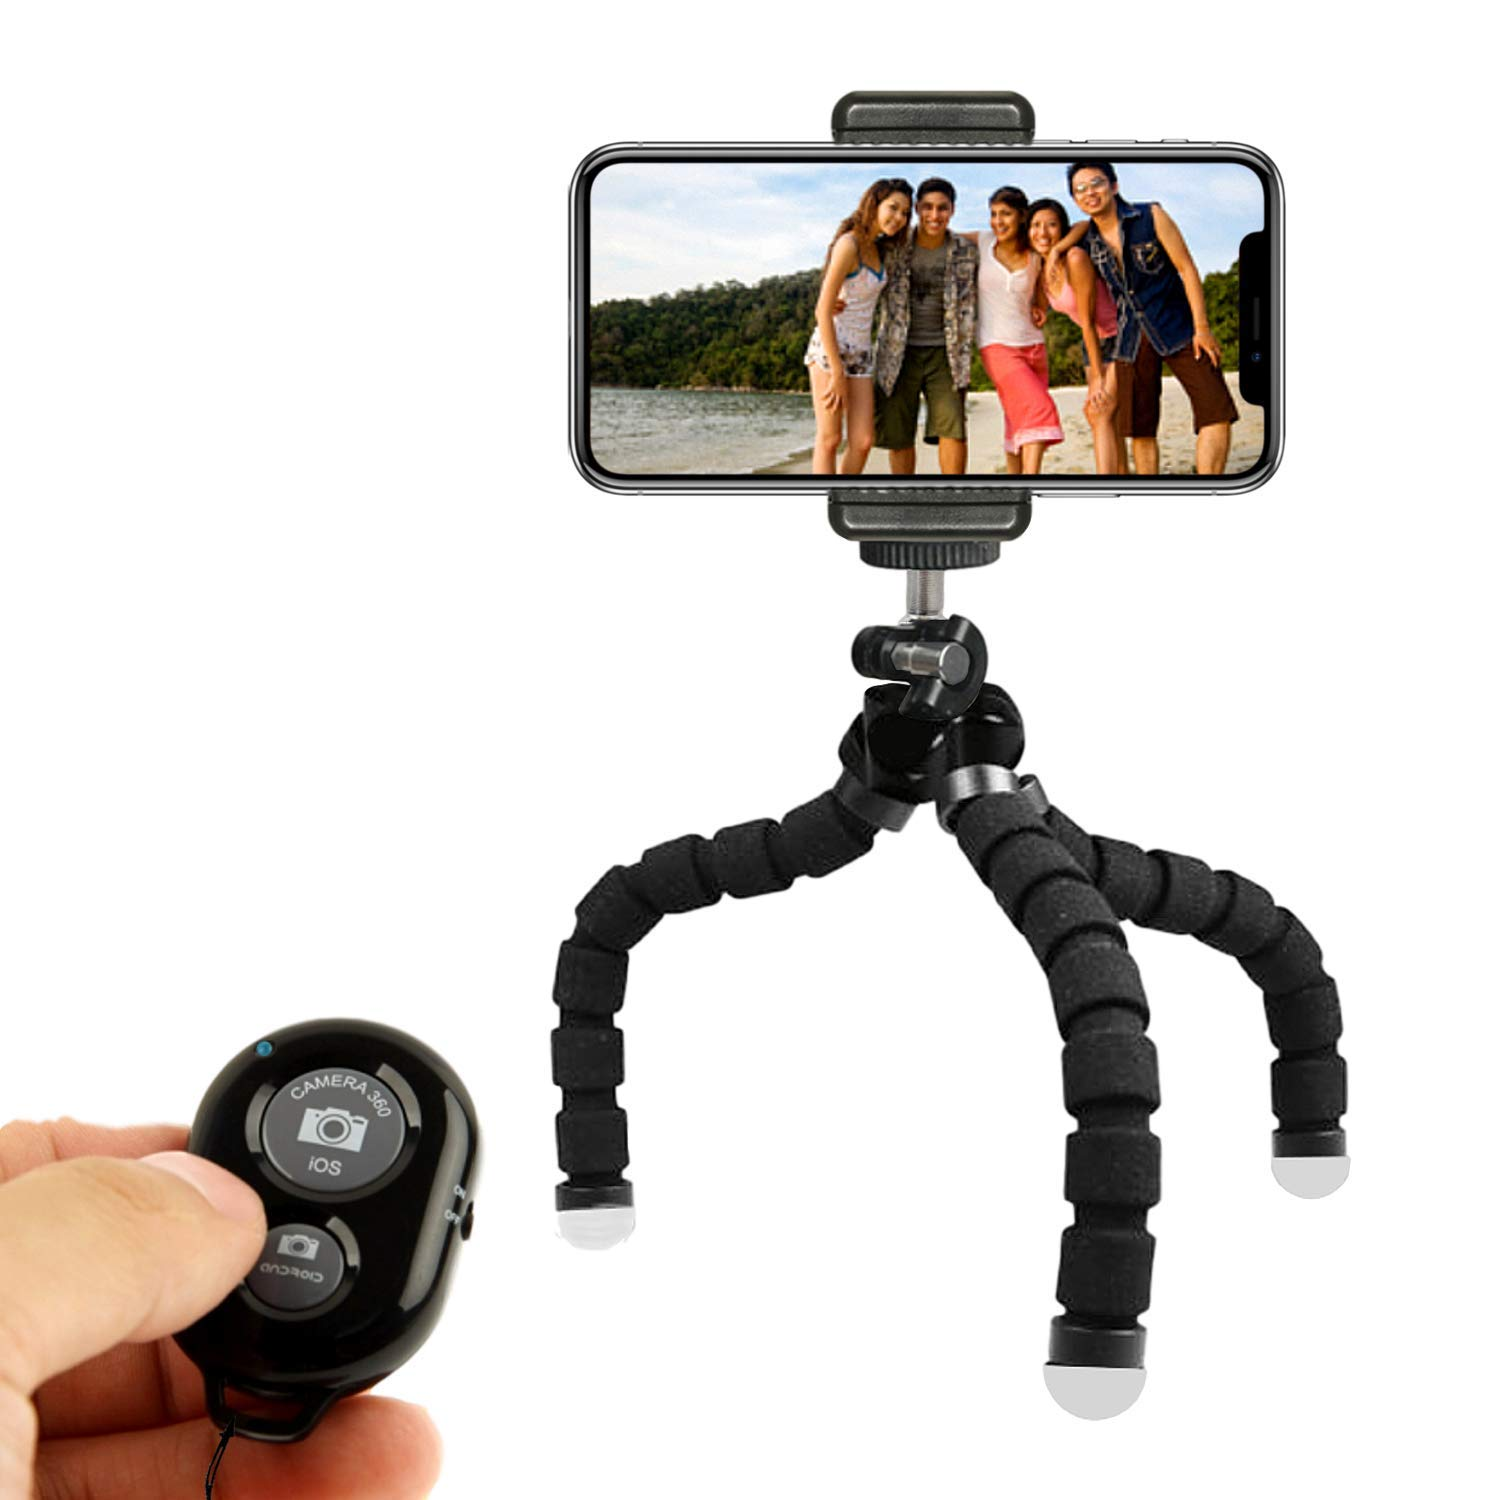 KobraTech Cell Phone Tripod Stand - Flexible Tripod Compatible with iPhone, Android, DSLR Cameras & GoPro - TriFlex Pro KT-TFP